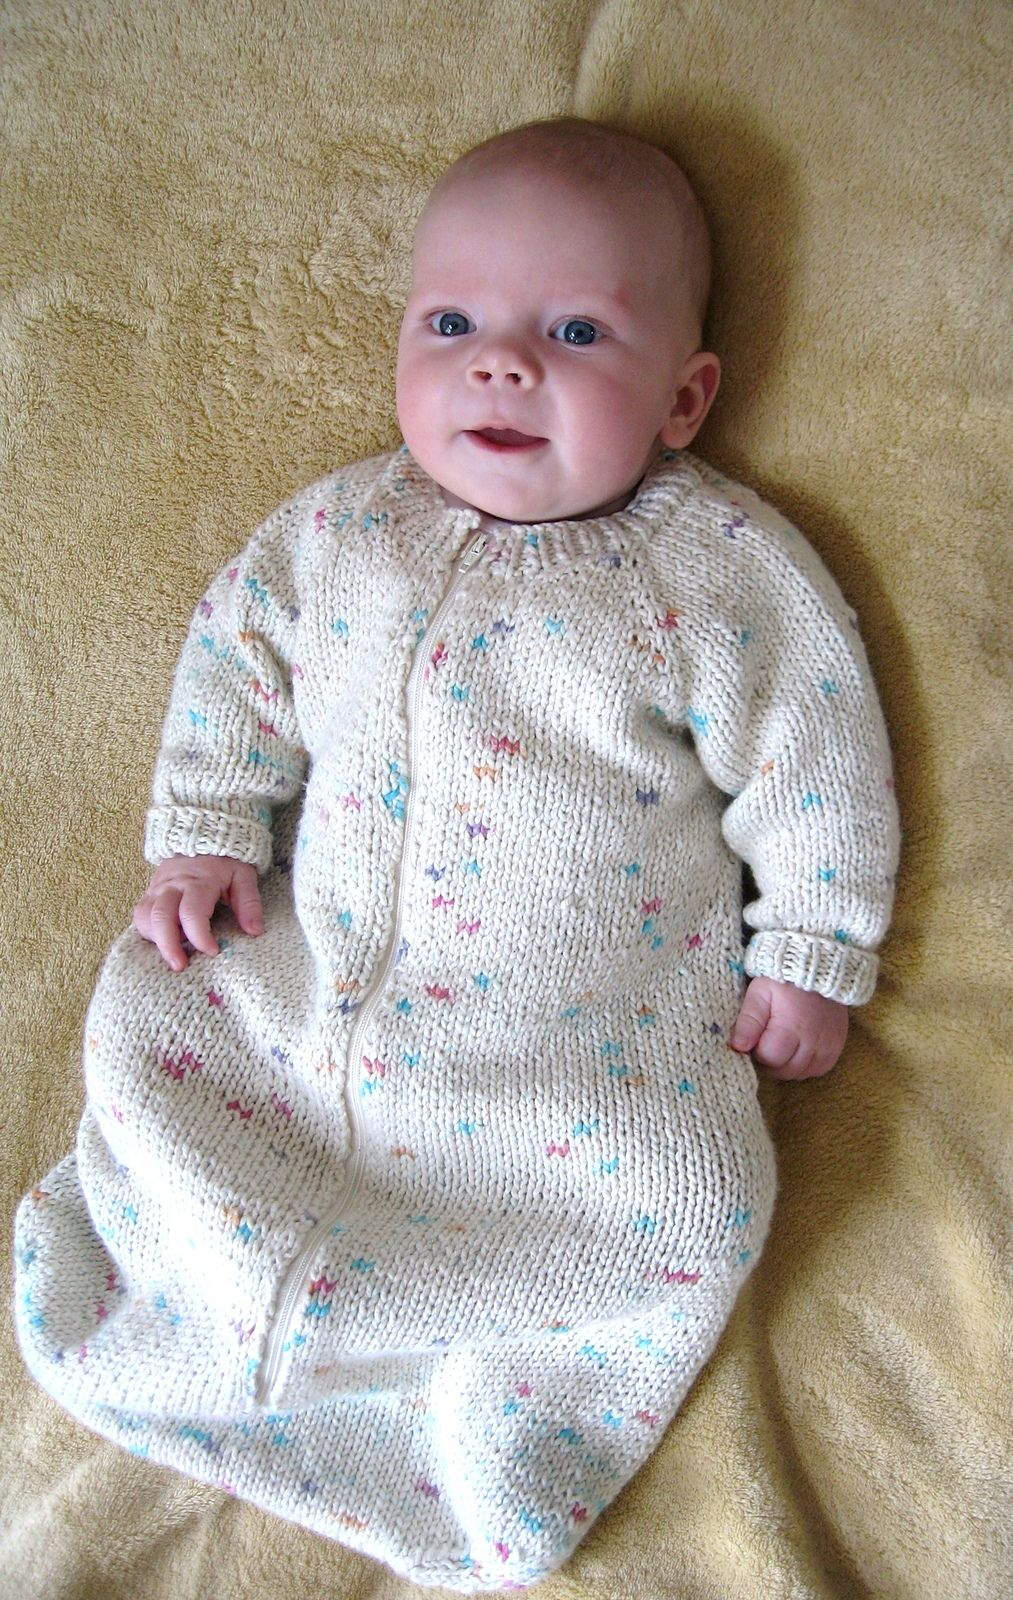 103 Baby Sleeping Bag pattern by Diane Soucy | Proyectos que debo ...